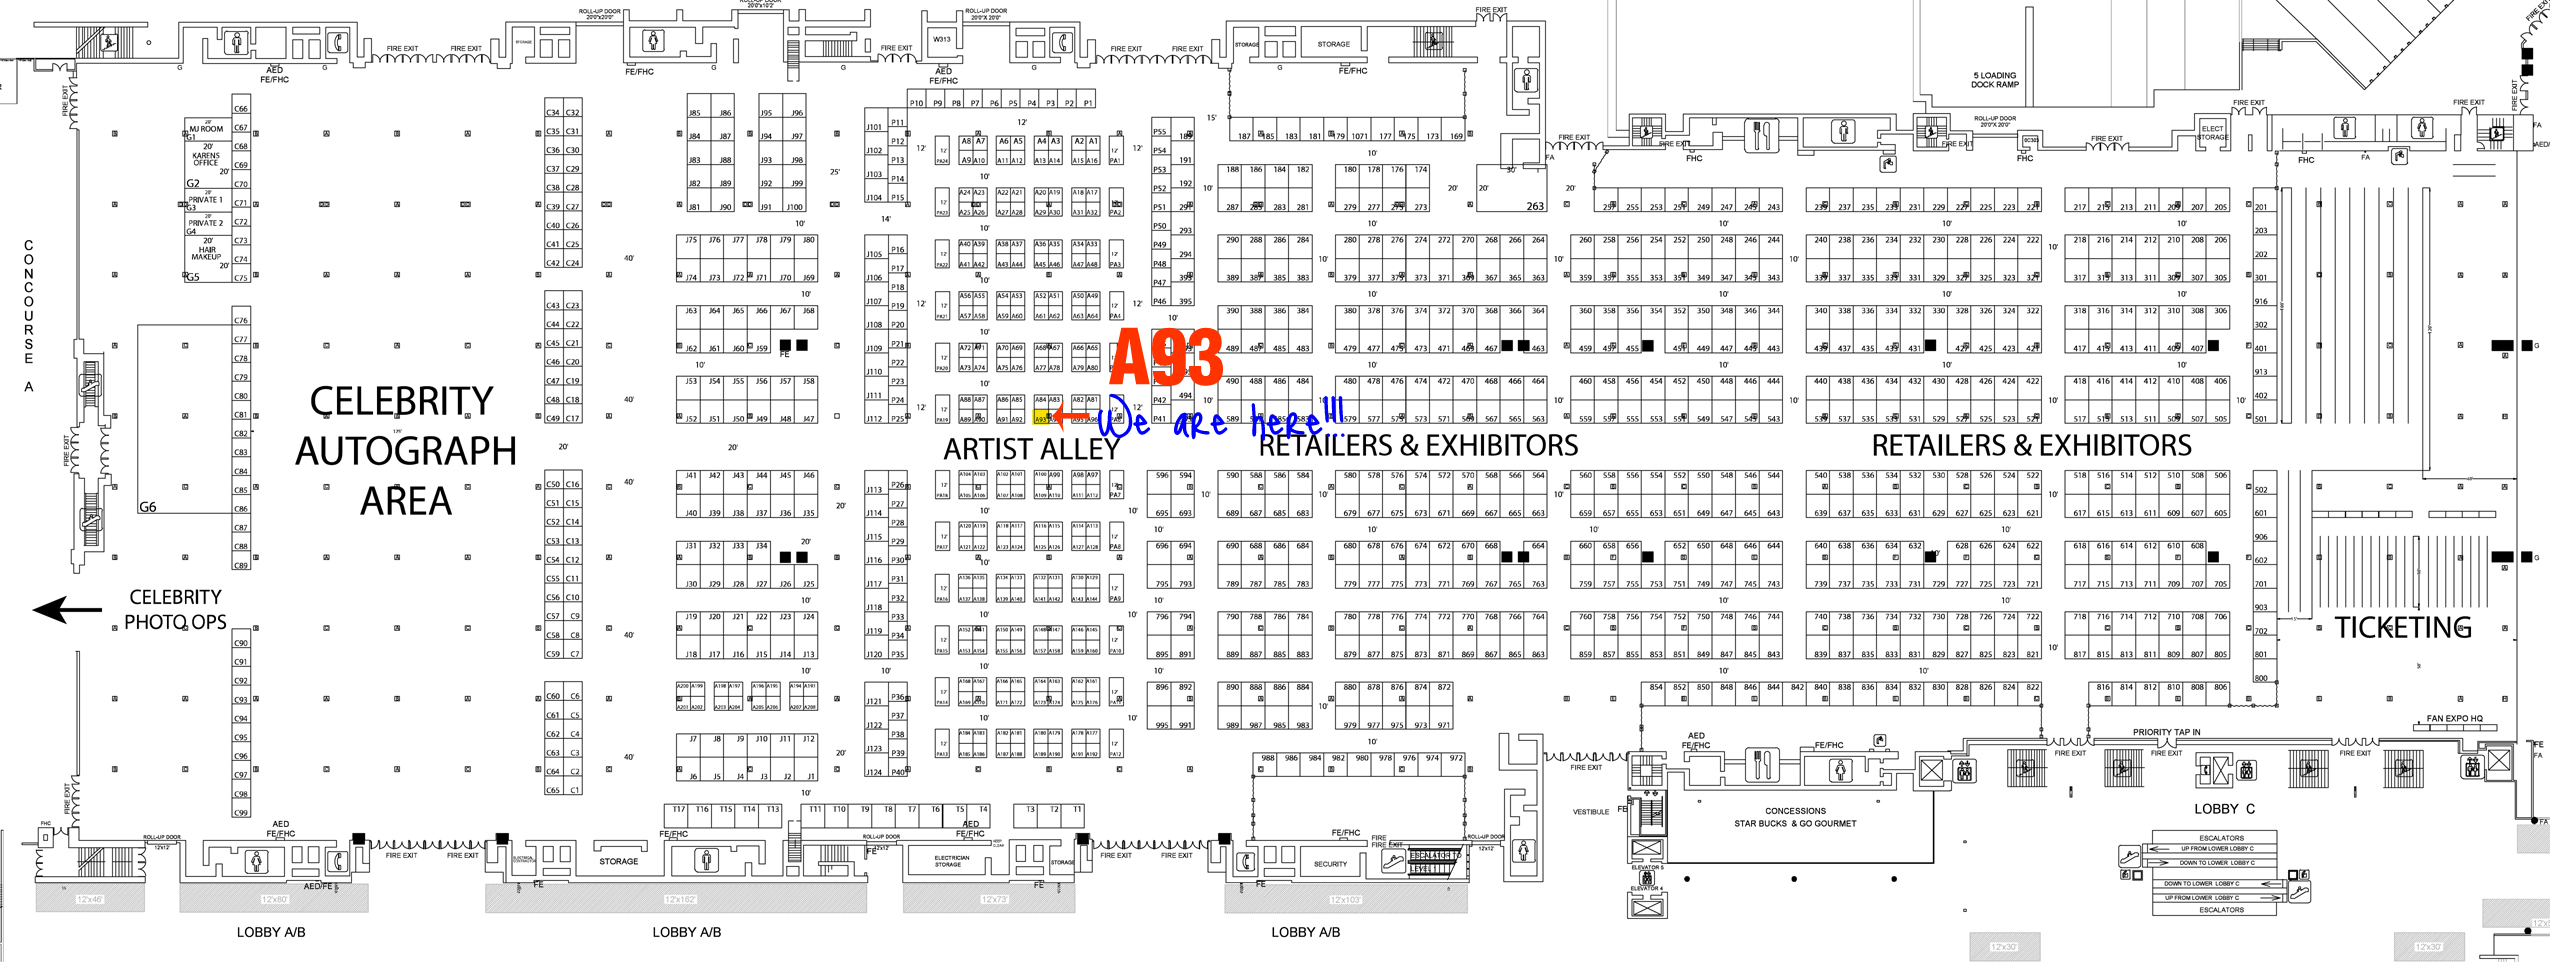 FanExpo Dallas Floor Plan